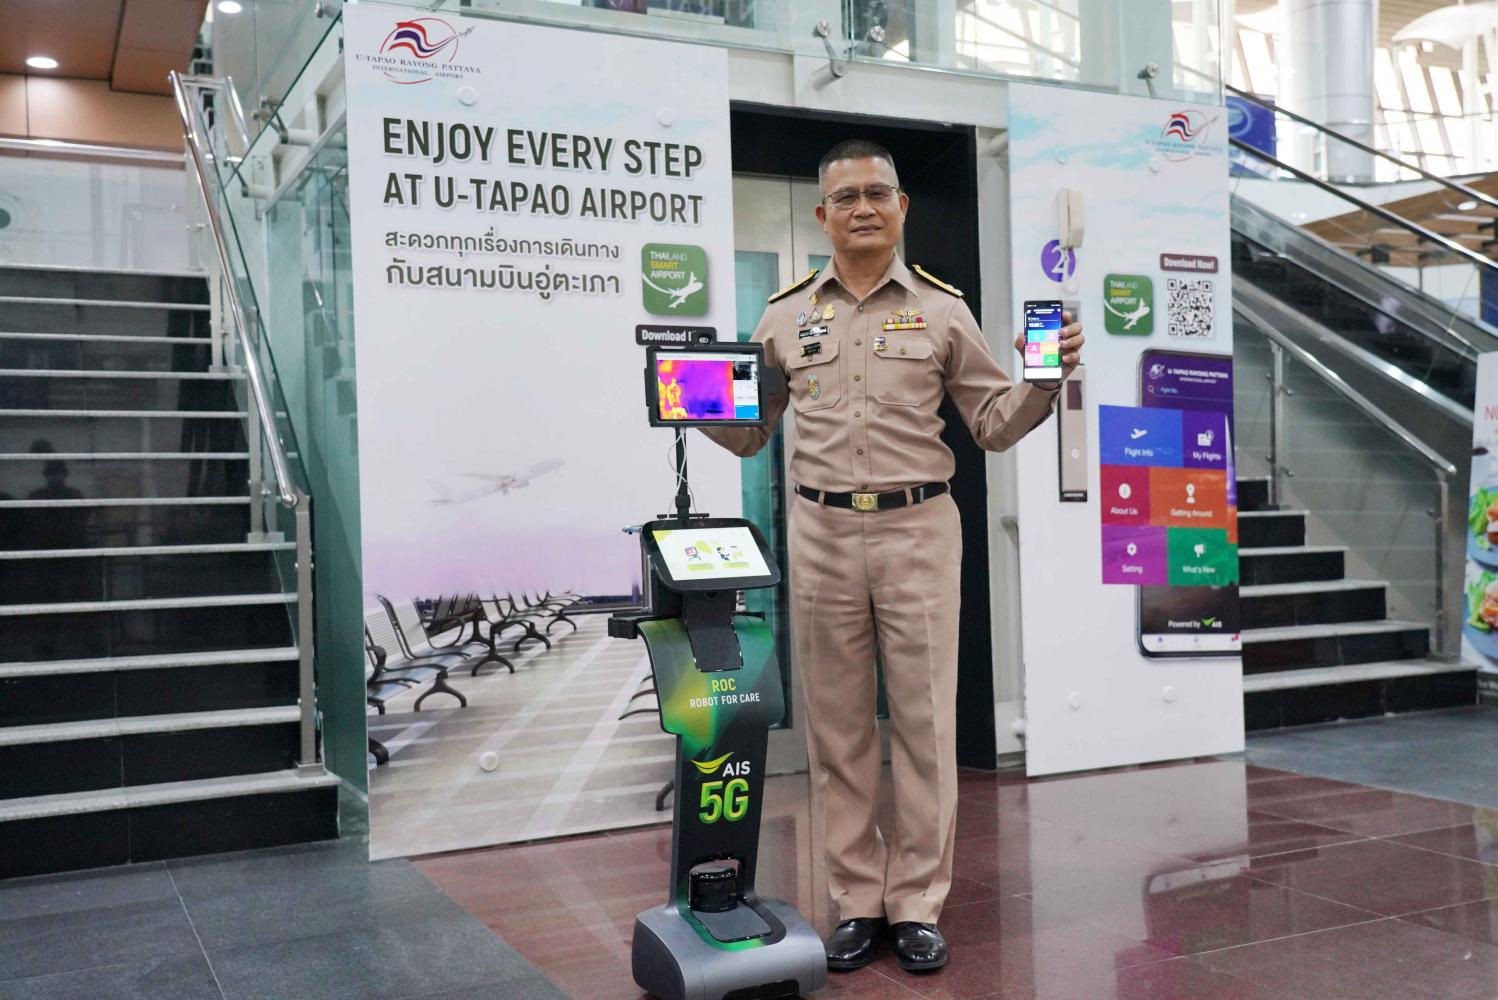 Vice Adm Kitchpol promotes the Thailand Smart Airport application and new robots that scan passengers' temperatures at U-tapao airport.